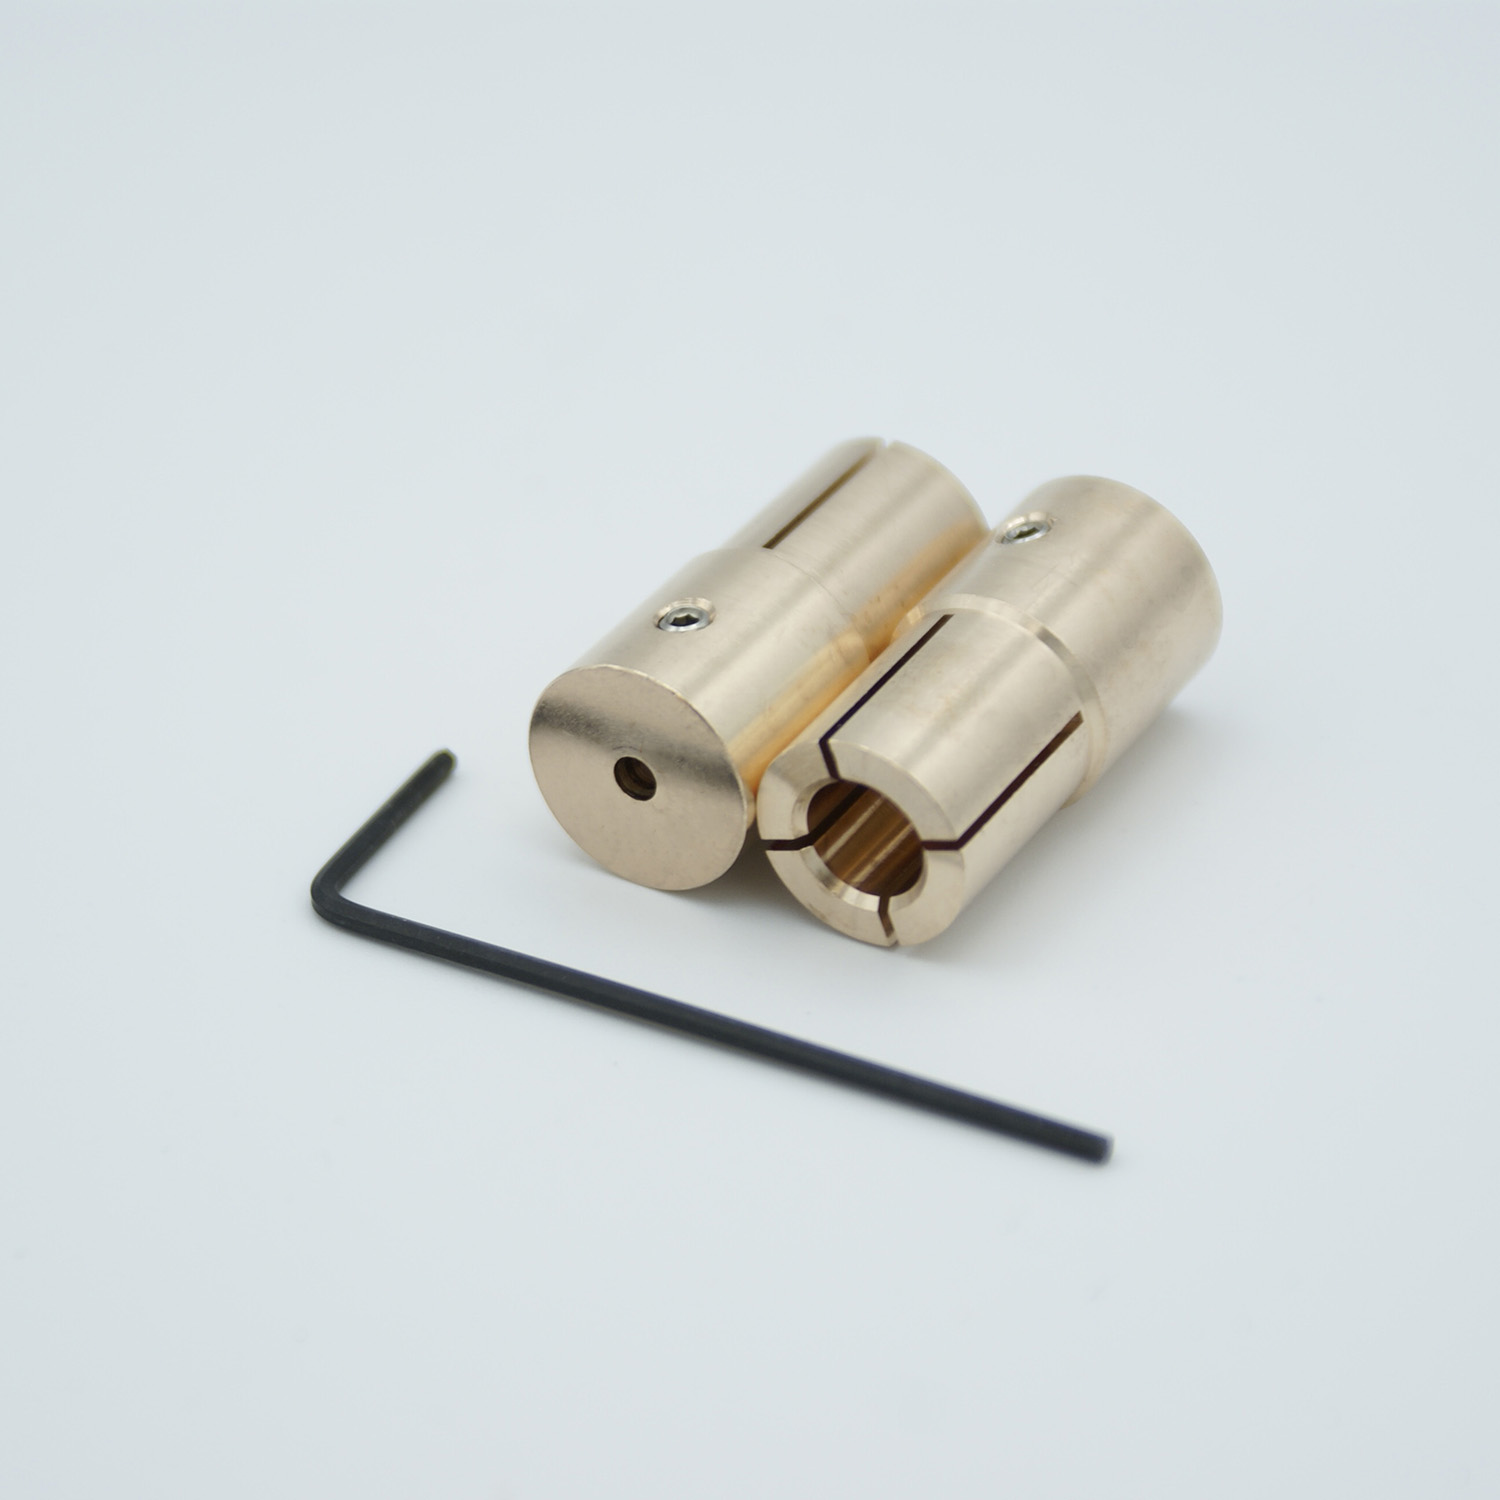 Power push-on connectors for pin size 0,25